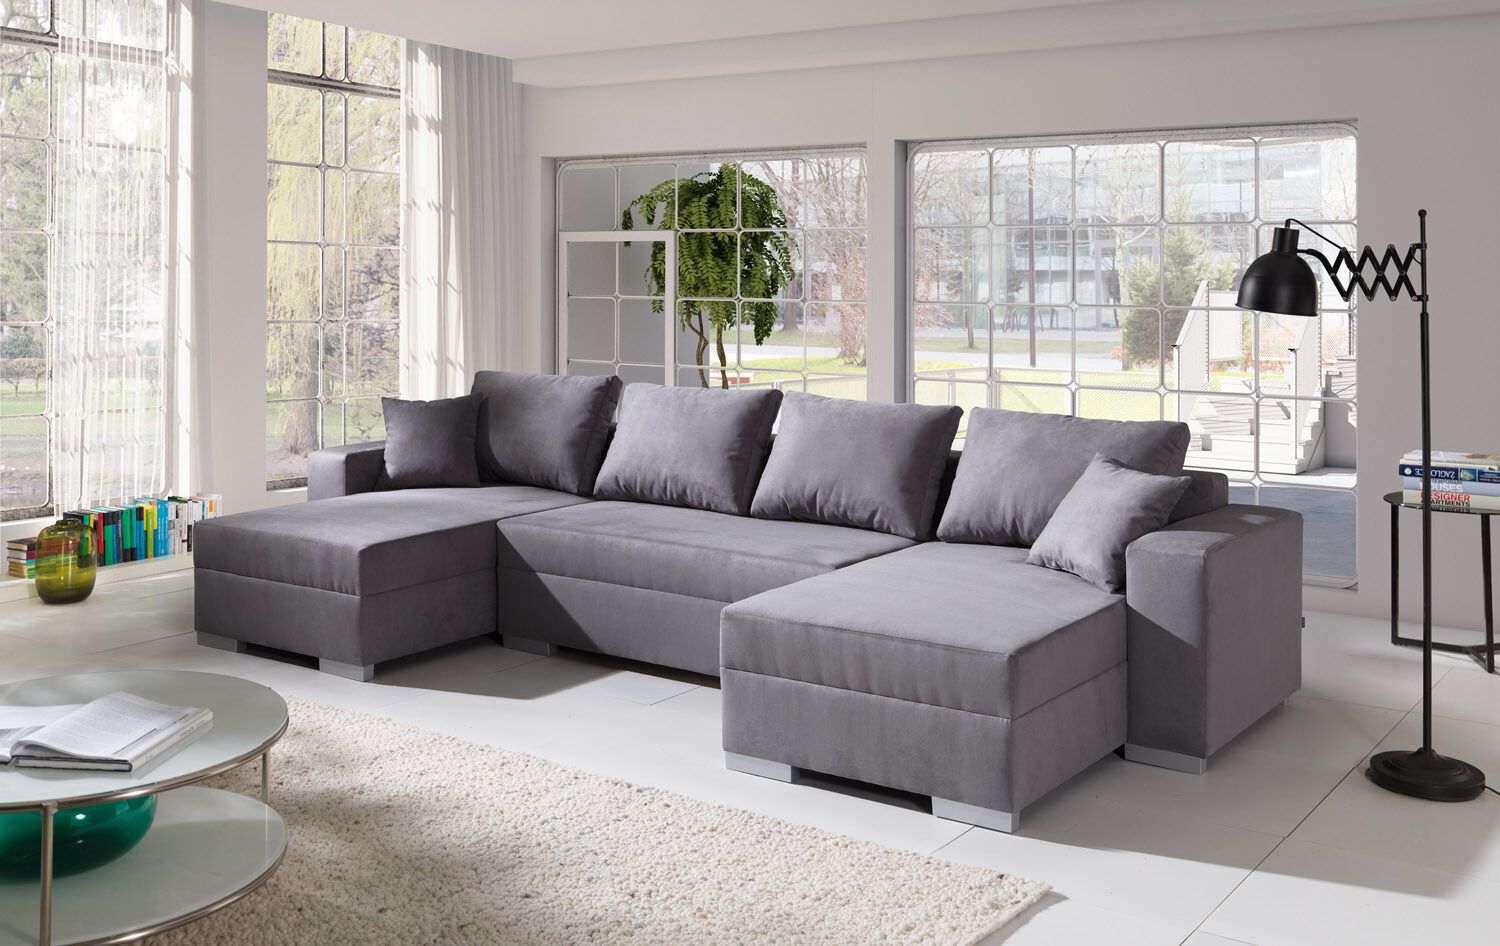 Incredible Sofa Couchgarnitur Couch Sofagarnitur U Wohnlandschaft Schlaffunktion 4112200 5 Gmtry Best Dining Table And Chair Ideas Images Gmtryco